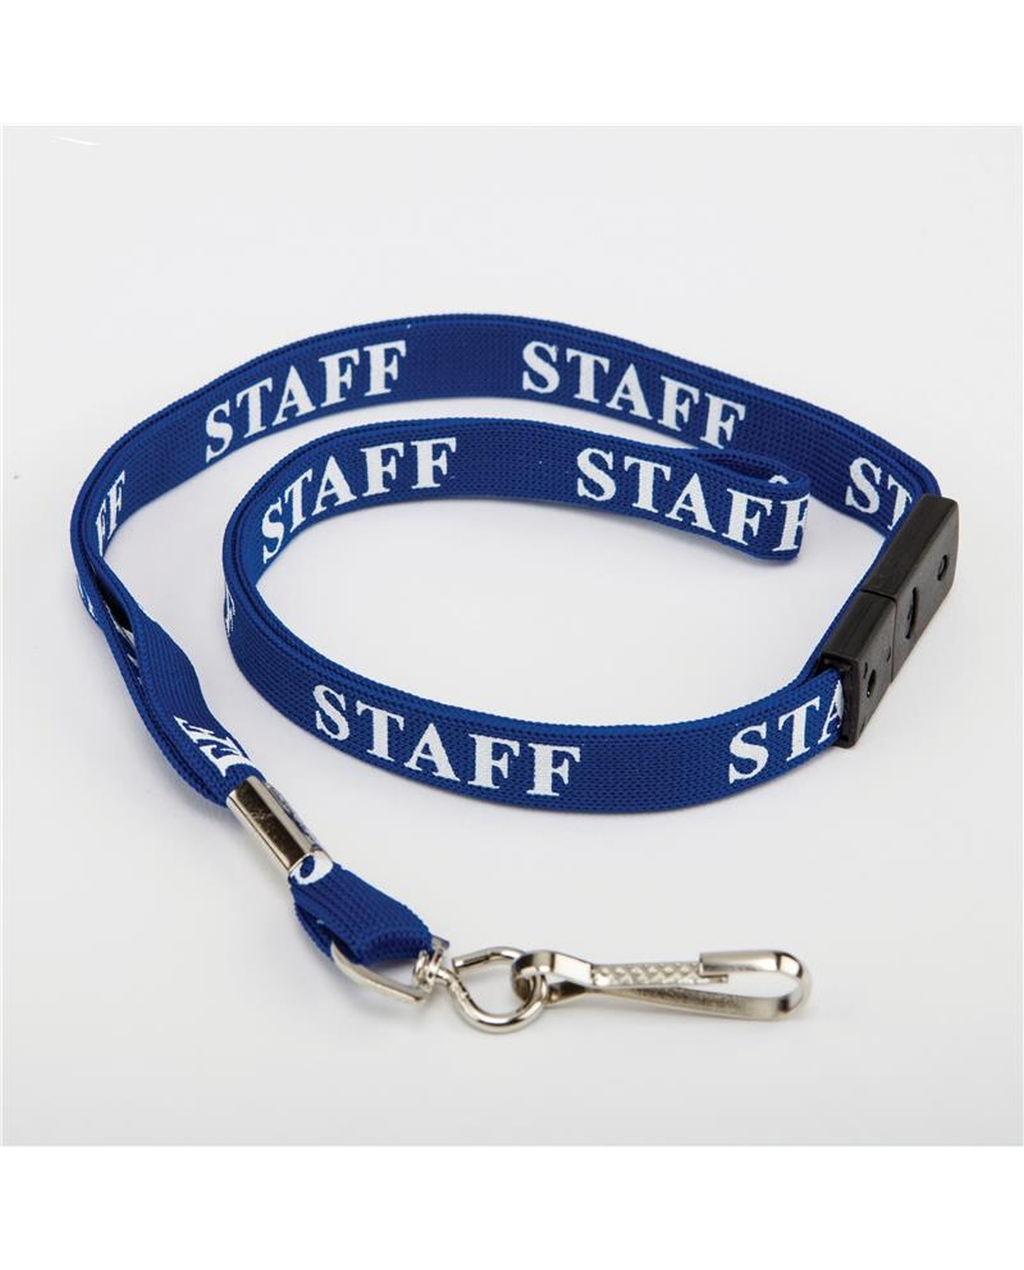 10 Printed Breakaway Lanyards - STAFF